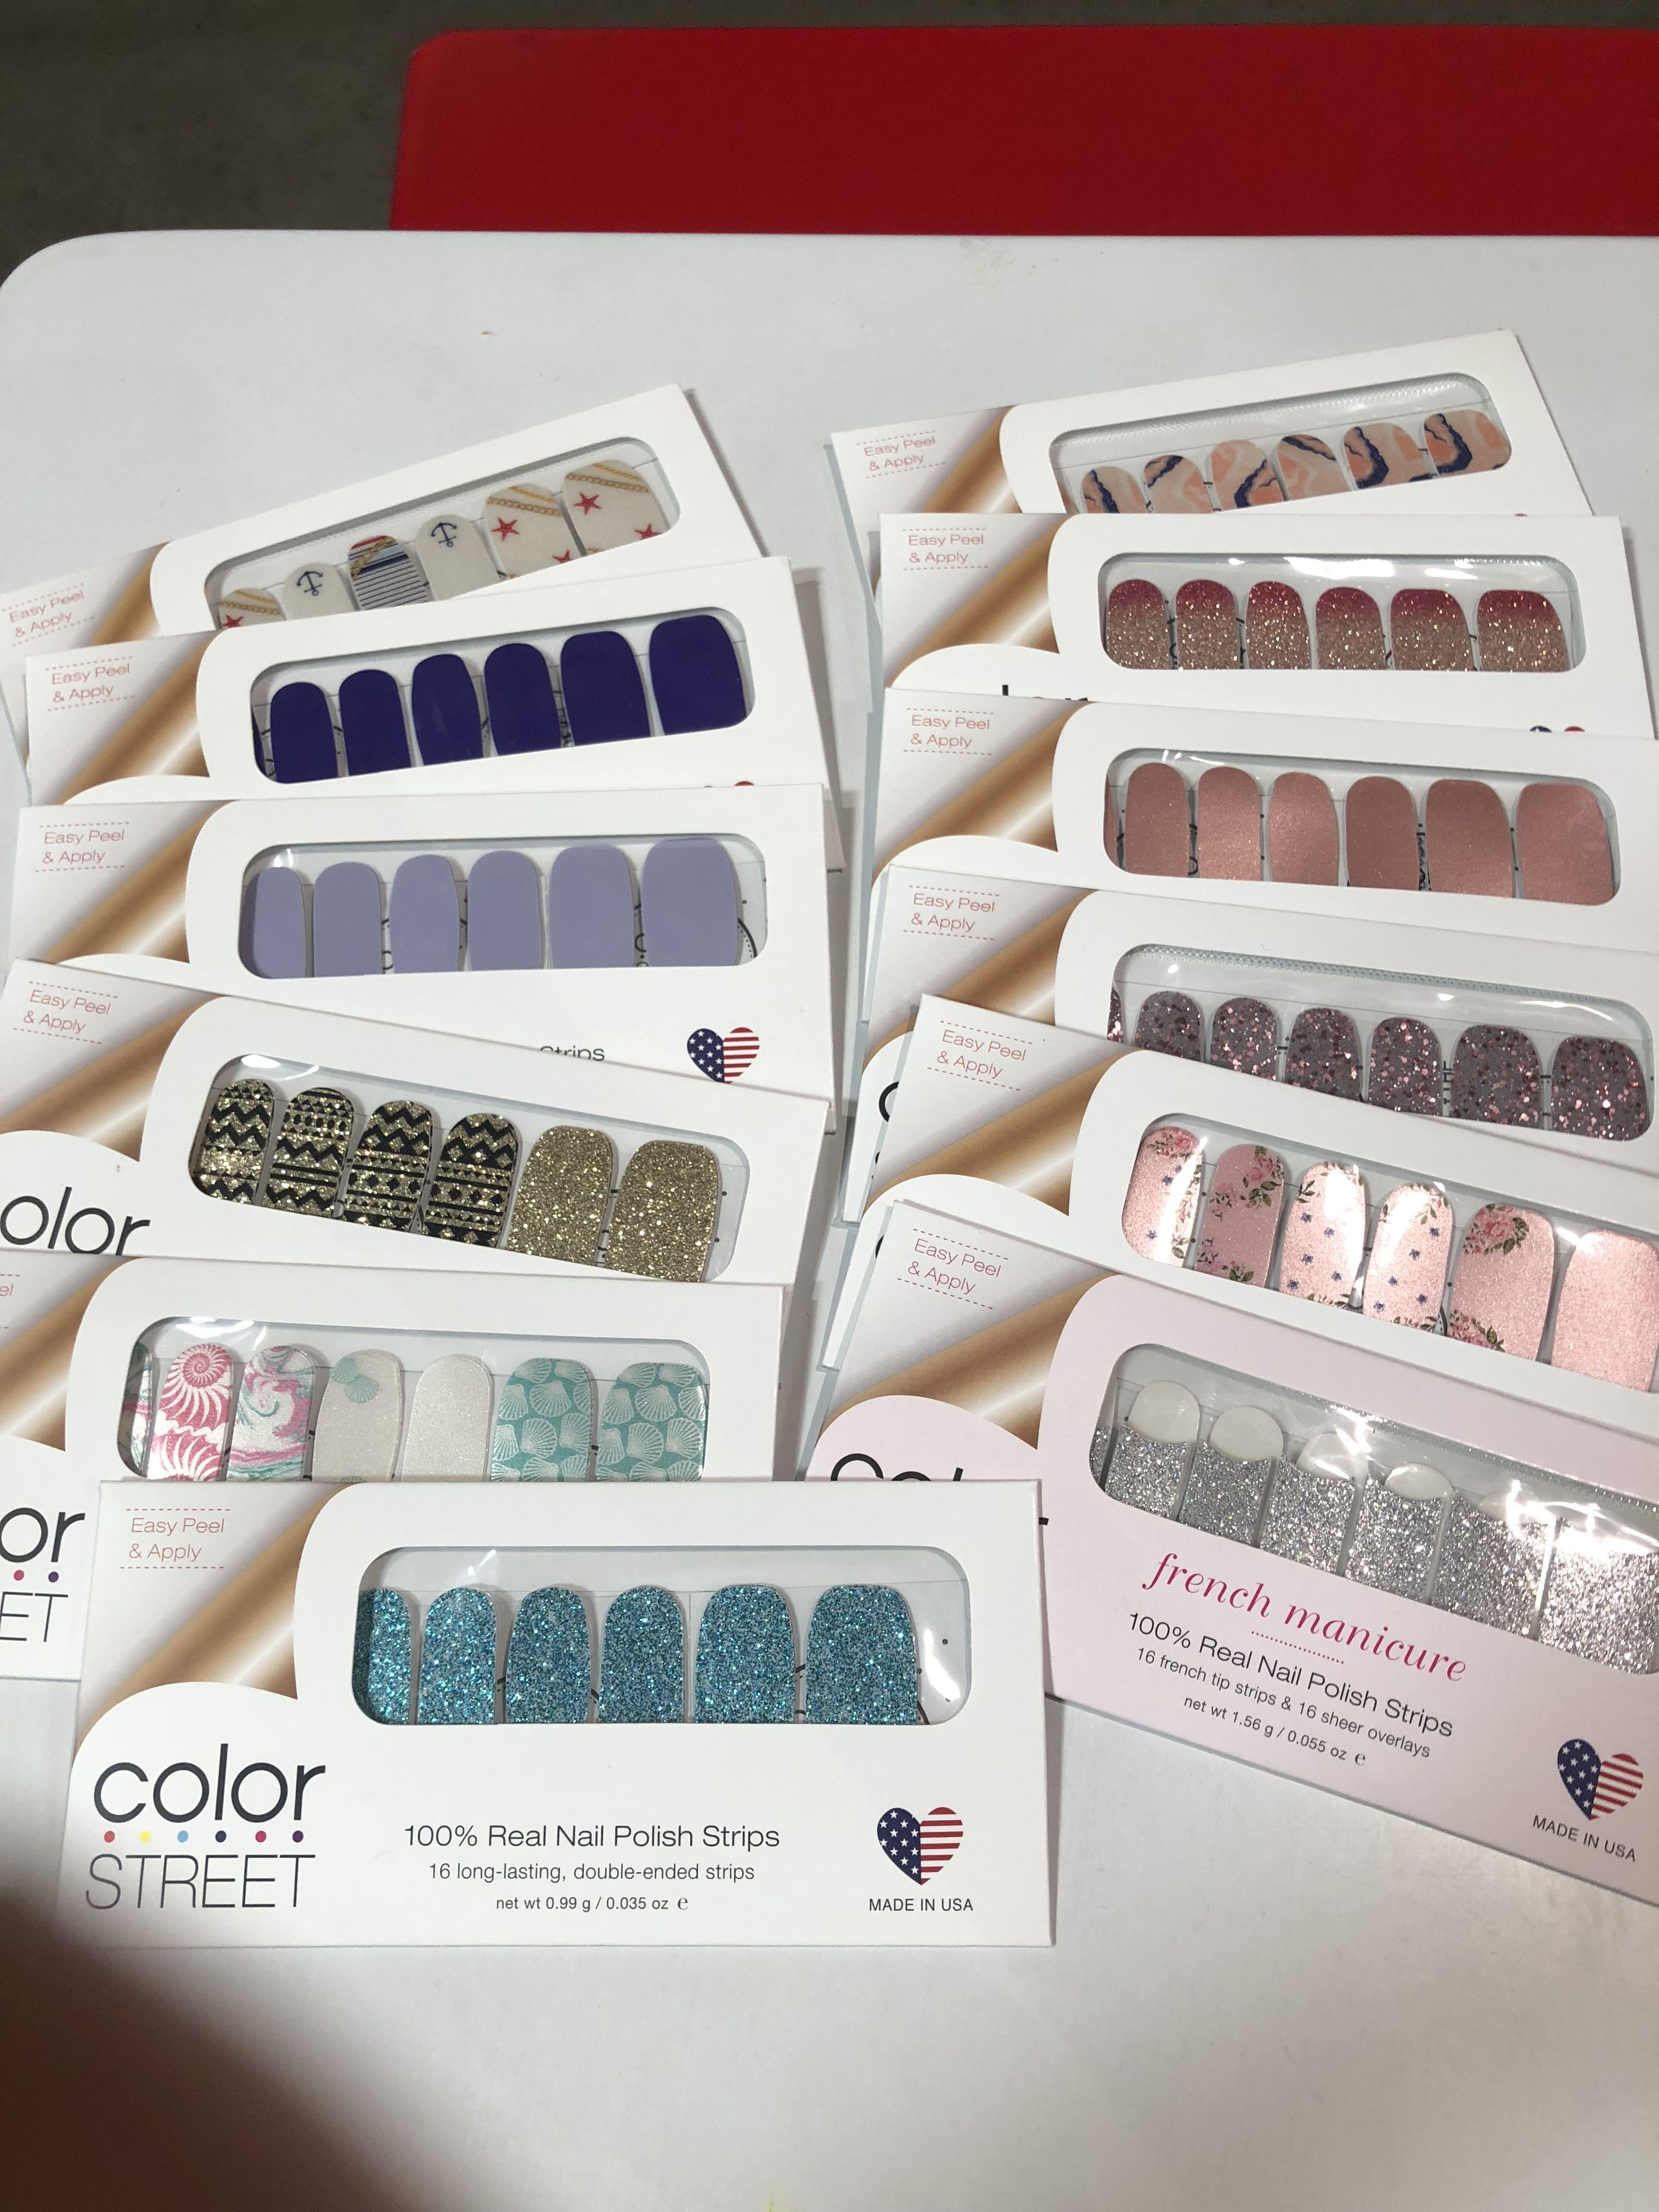 Some of the new spring collection! Request Free Real Nail Polish ...